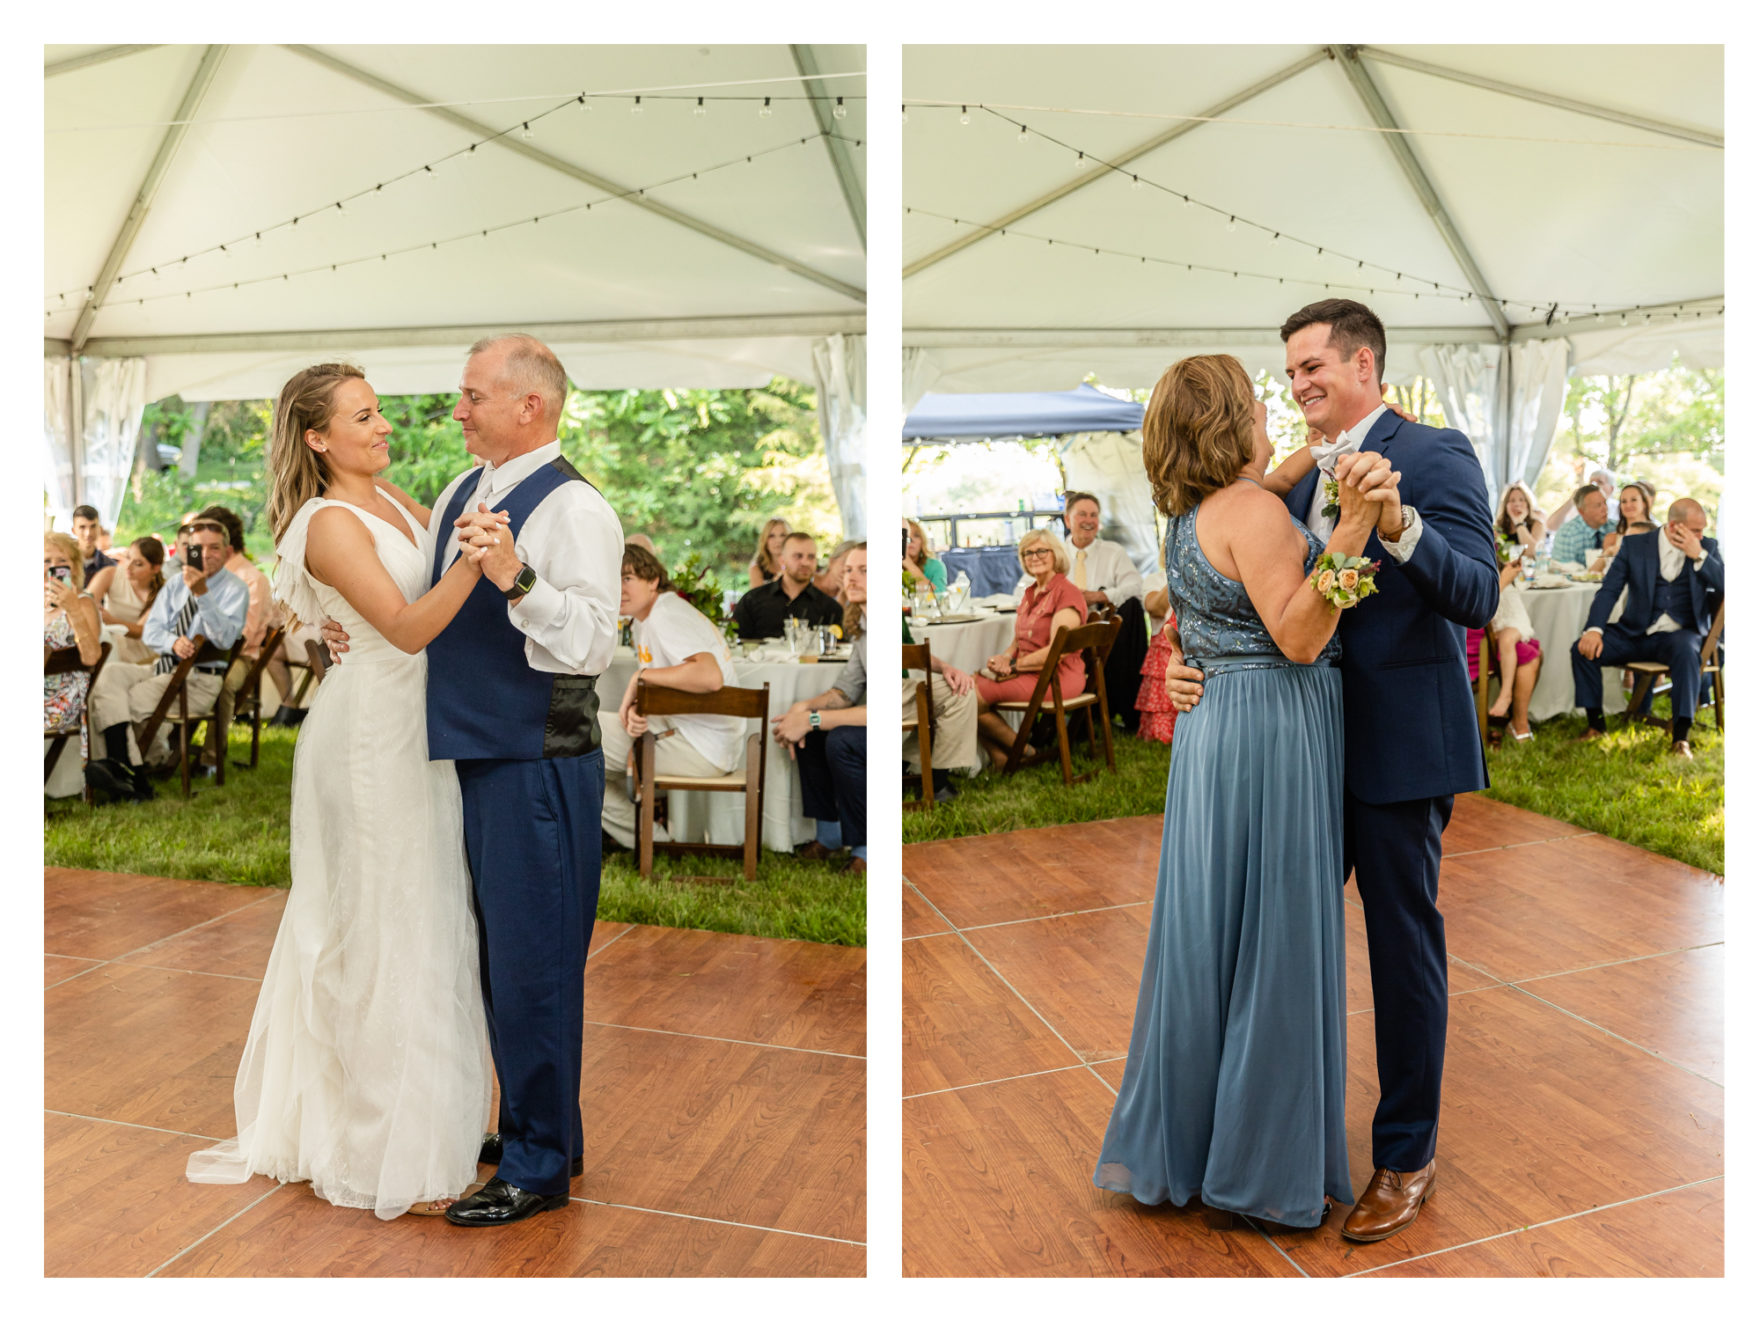 Summer wedding at a private residence farm in Westminster Carroll County Maryland. Cicadas, cows and dogs at the wedding. Pond view reception tent